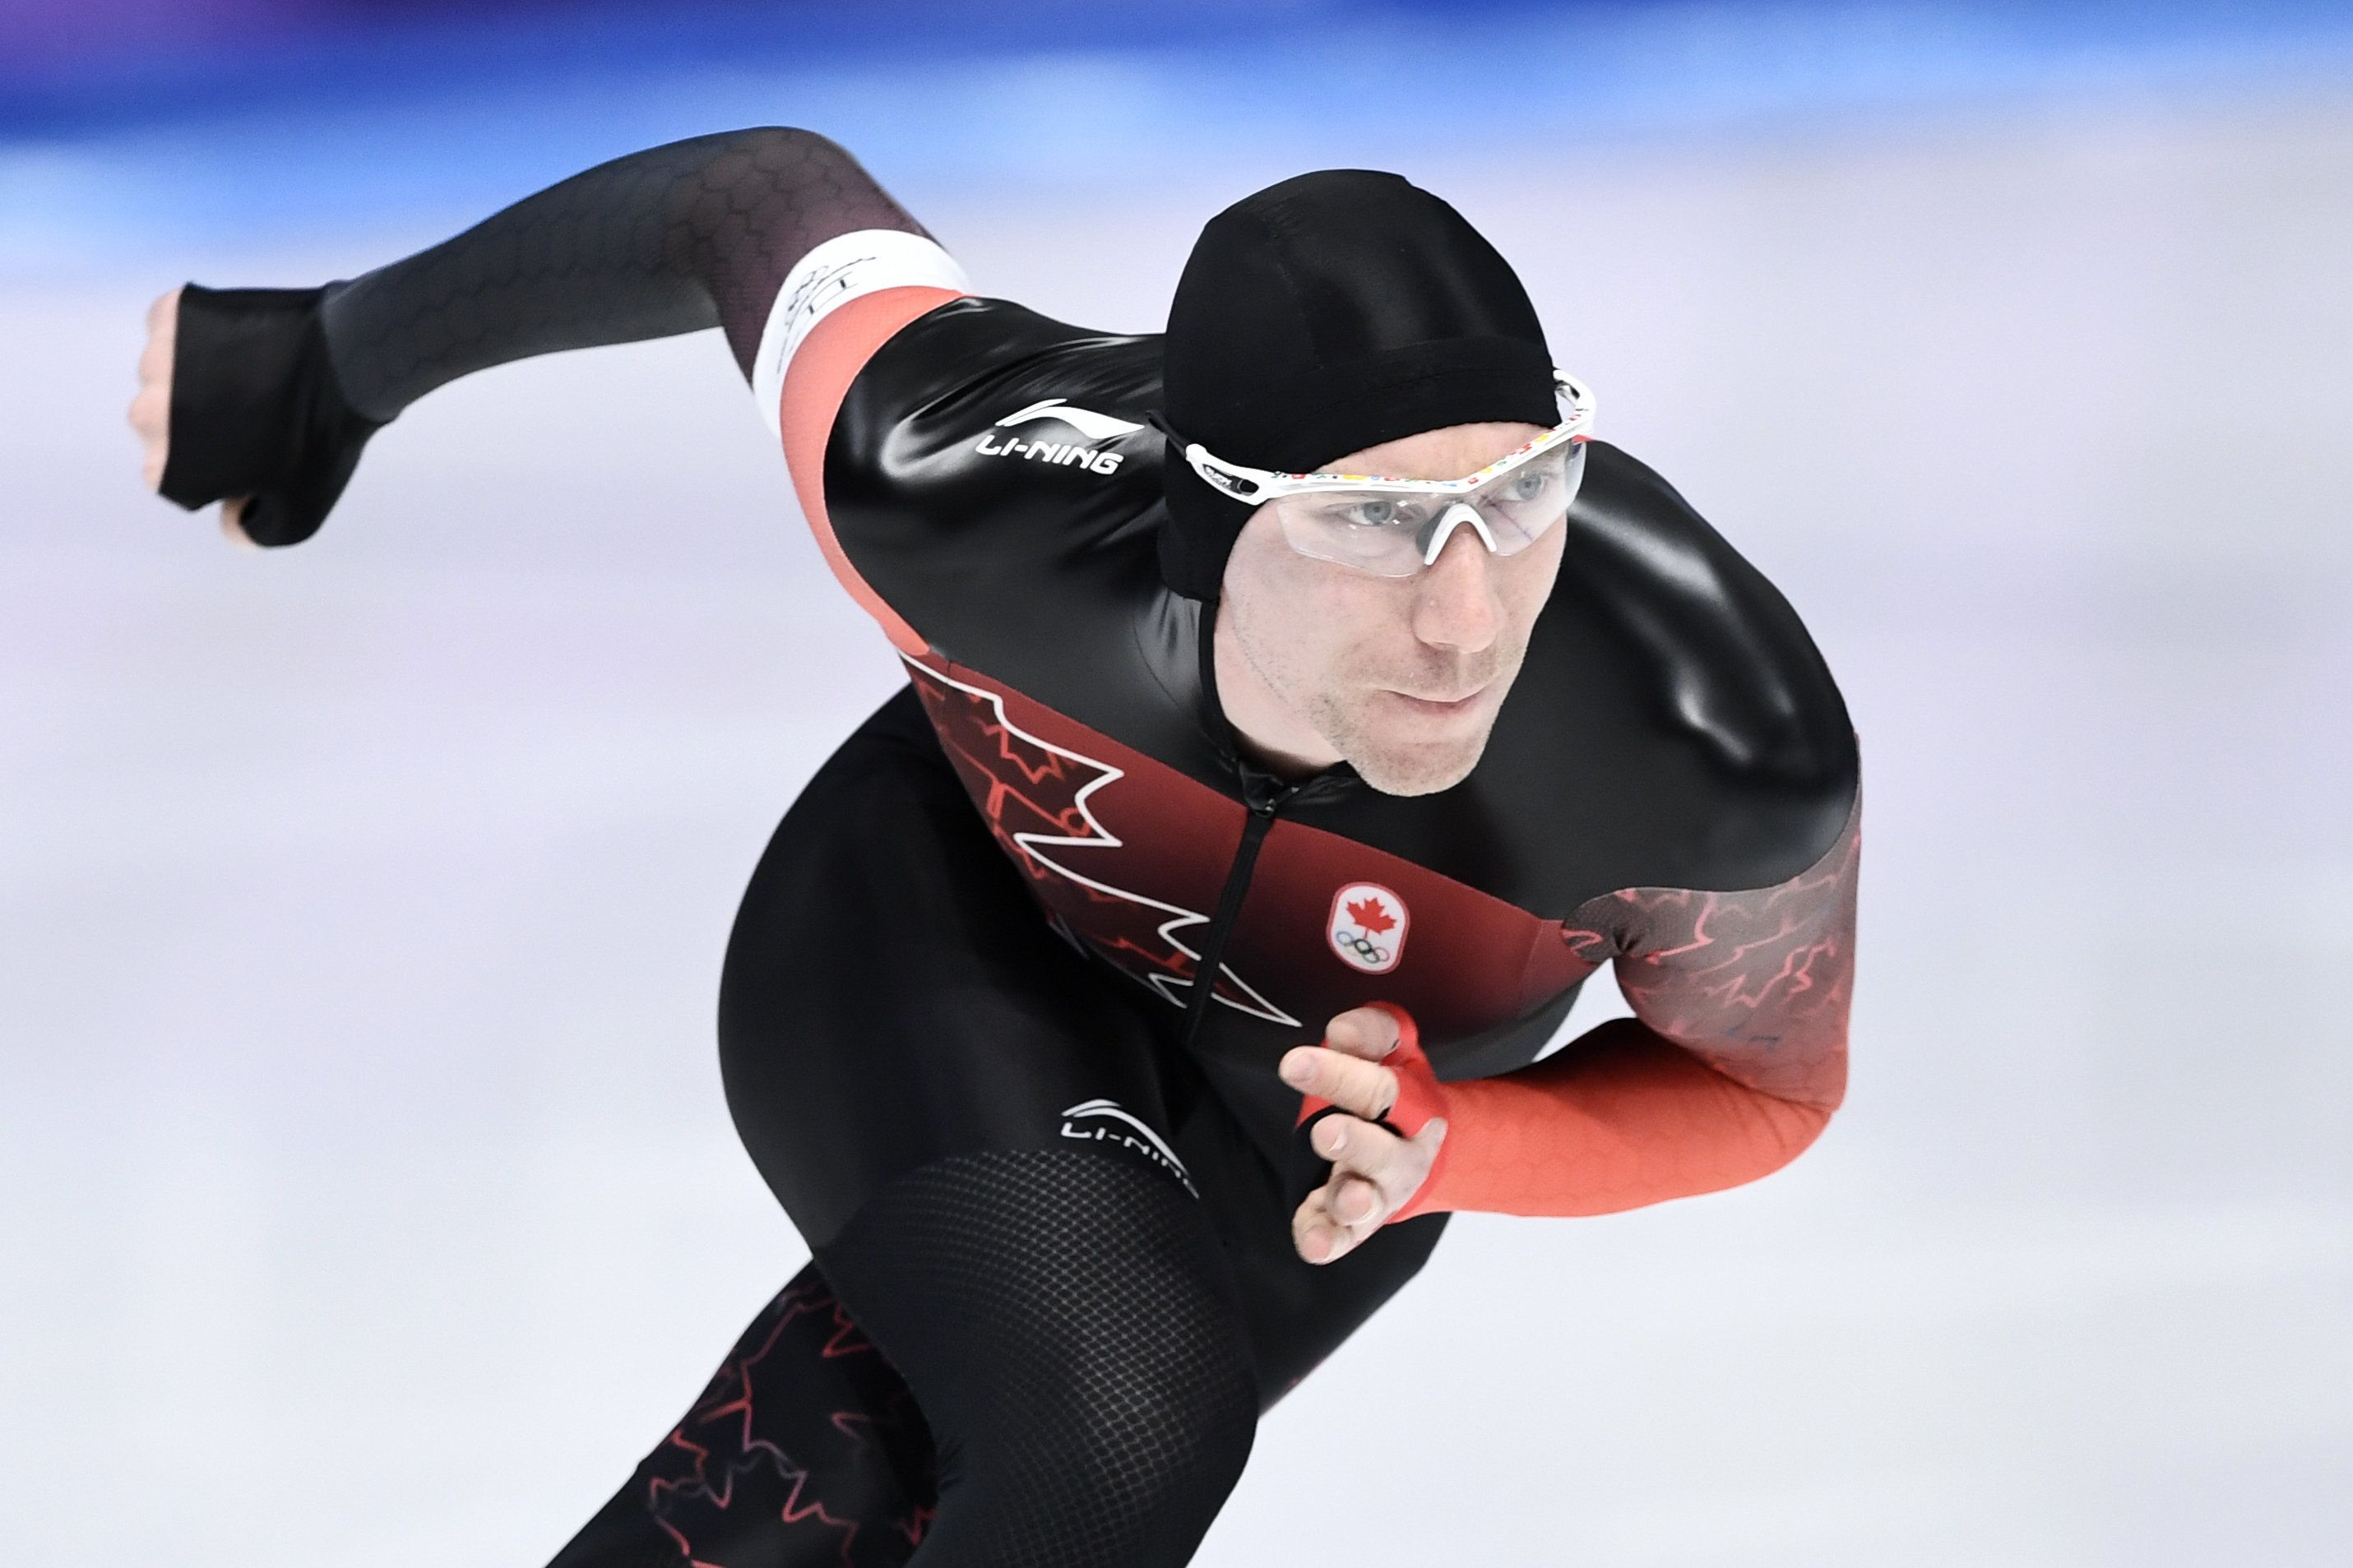 Canada's Ted-Jan Bloemen competes during the men's 5,000m speed skating event during the Pyeongchang 2018 Winter Olympic Games at the Gangneung Oval in Gangneung on February 11, 2018. / AFP PHOTO / ARIS MESSINIS        (Photo credit should read ARIS MESSINIS/AFP/Getty Images)